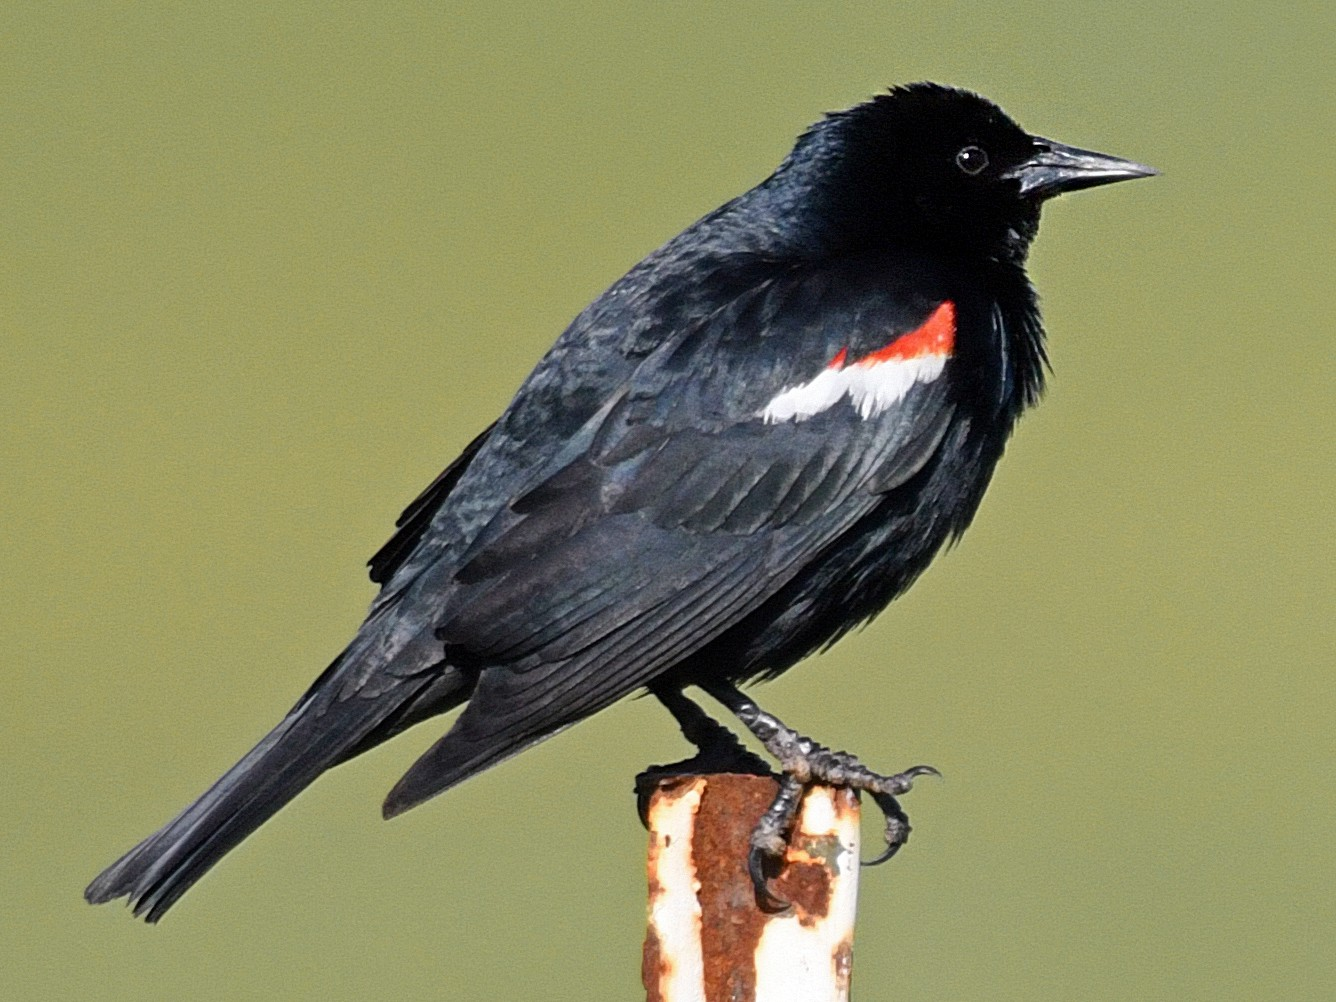 Tricolored Blackbird - Dan Murphy